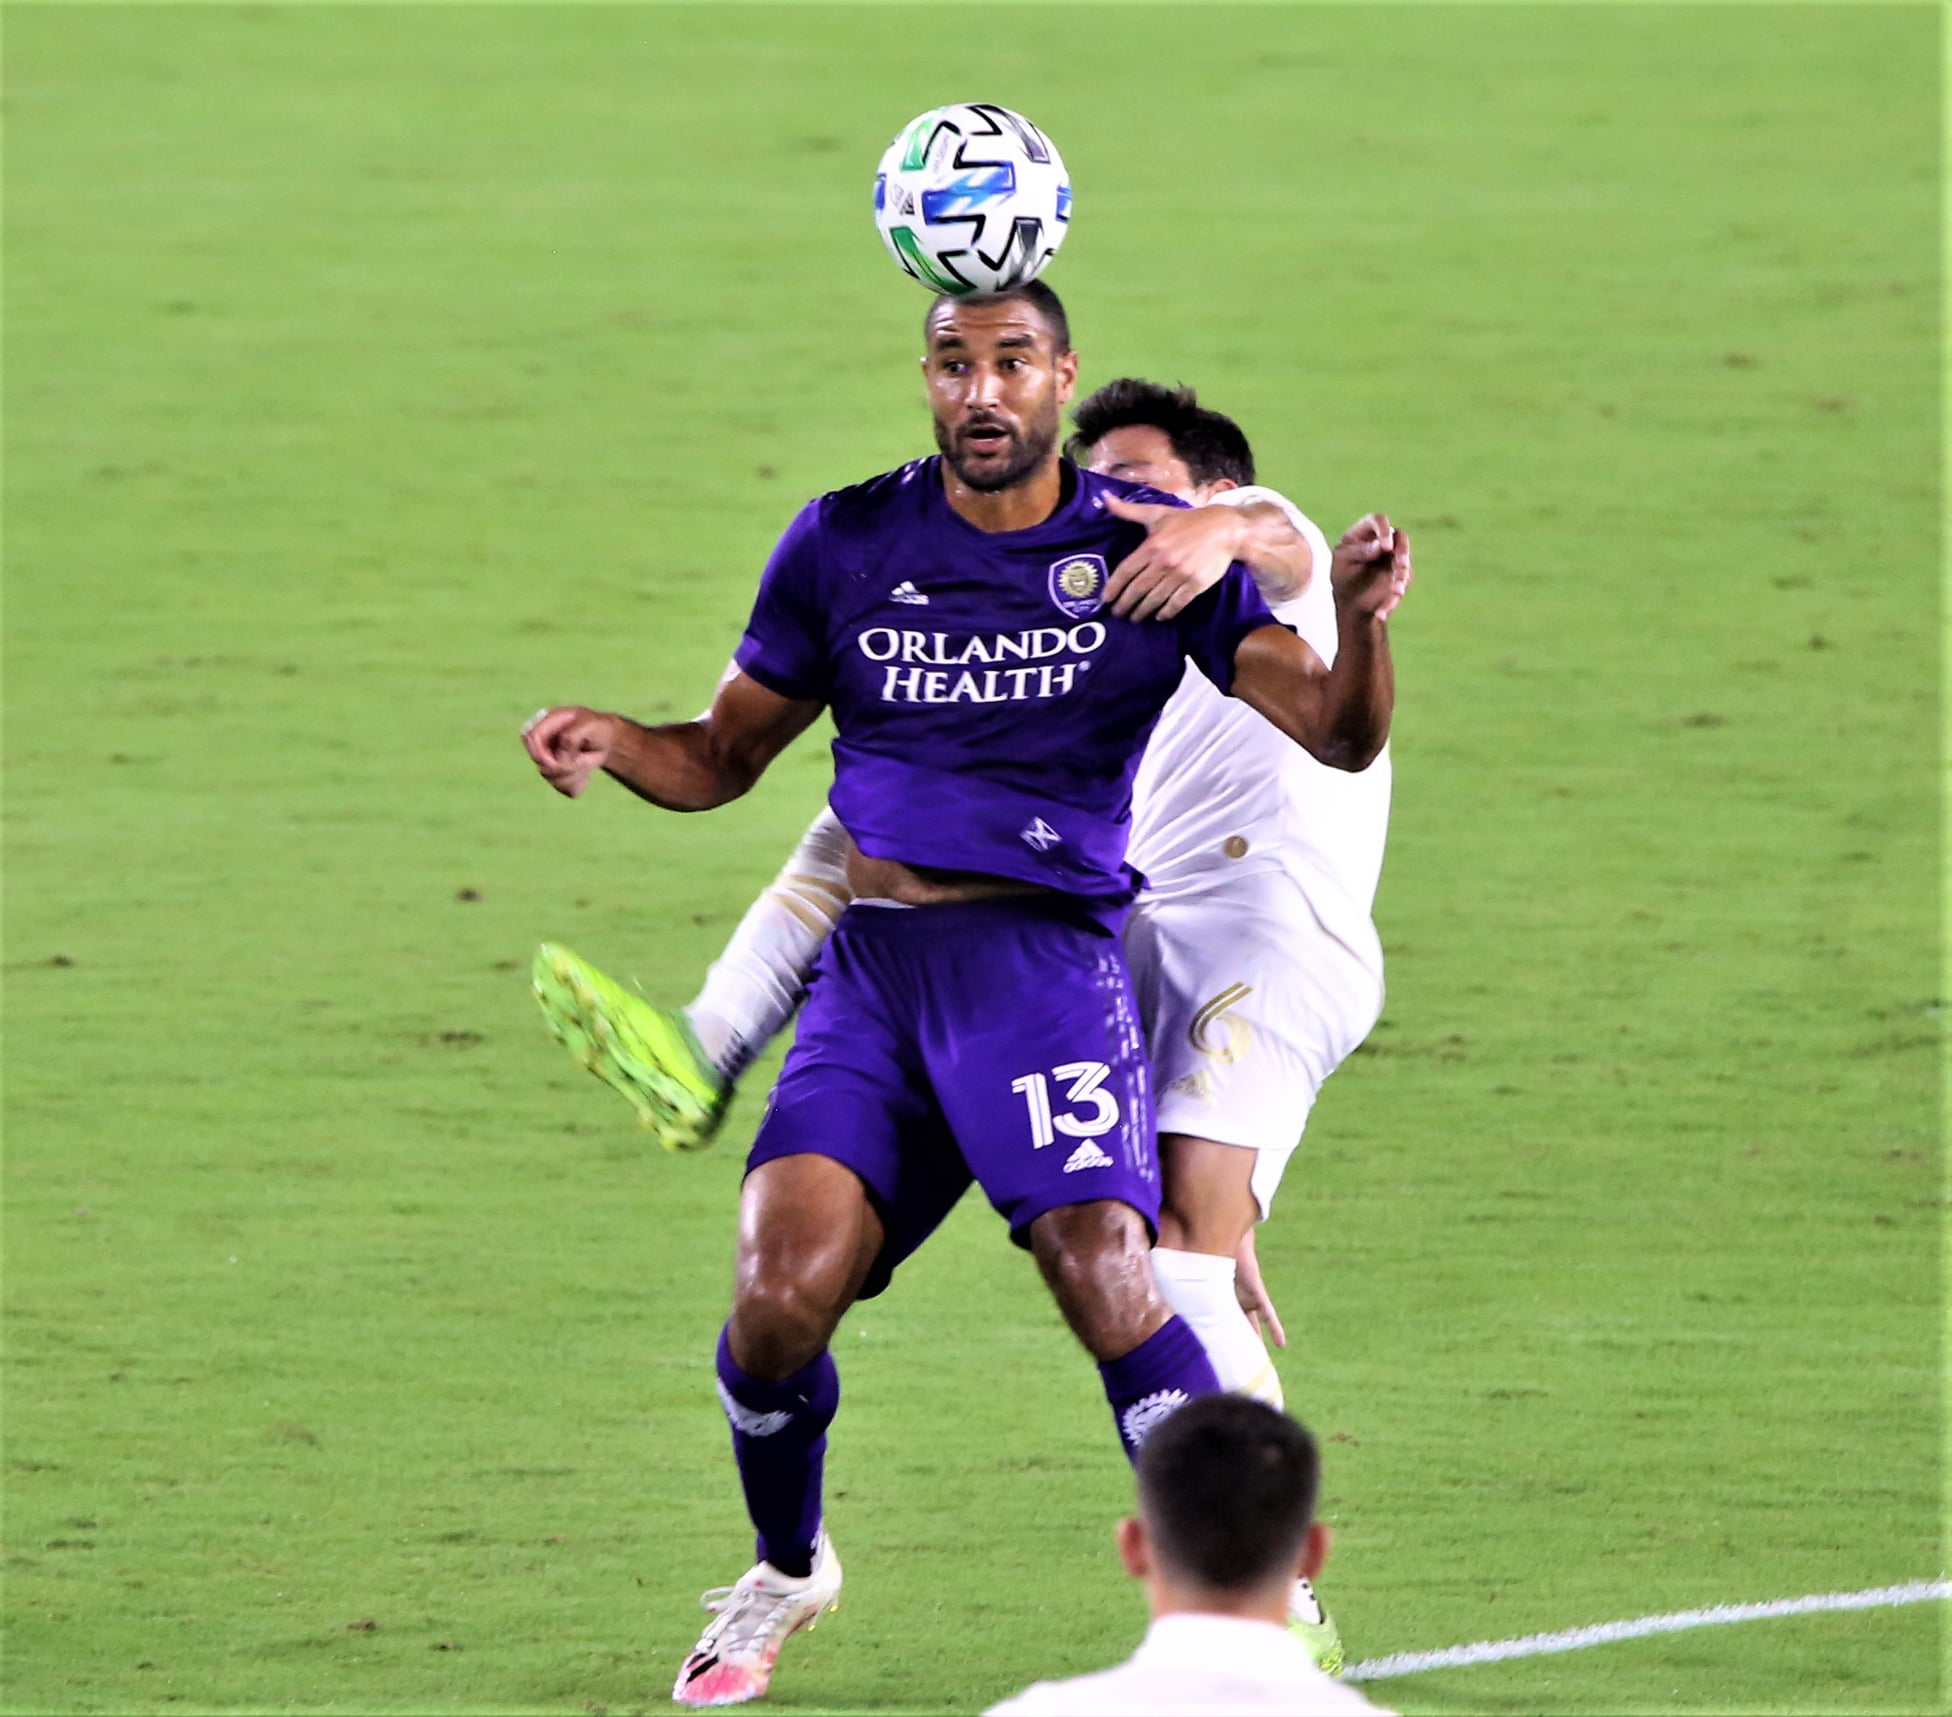 Orlando City SC's Tesho Akindele (#13) heads a flying pass in a typically physical against Atlanta United FC at Exploria Stadium Wednesday night. Photo: Willie David / Florida National News.